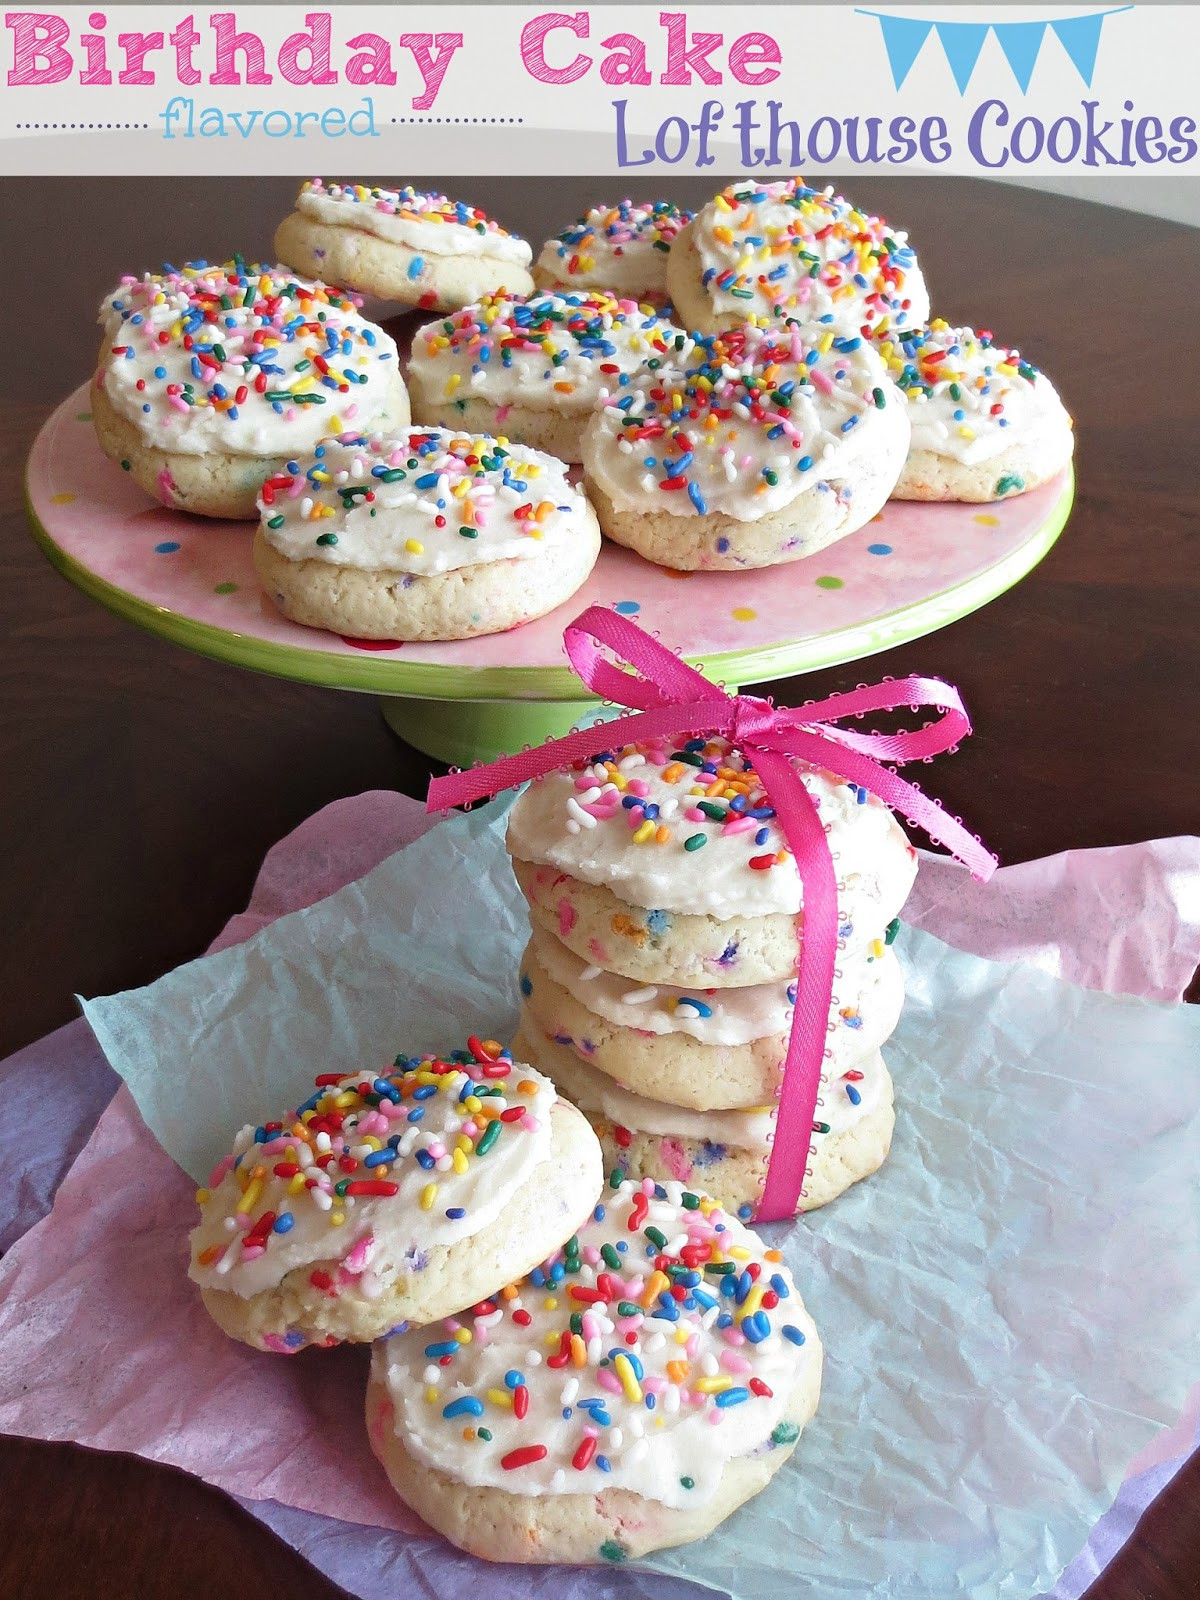 Best ideas about Birthday Cake Flavor . Save or Pin Kaitlin in the Kitchen Birthday Cake flavored Lofthouse Now.